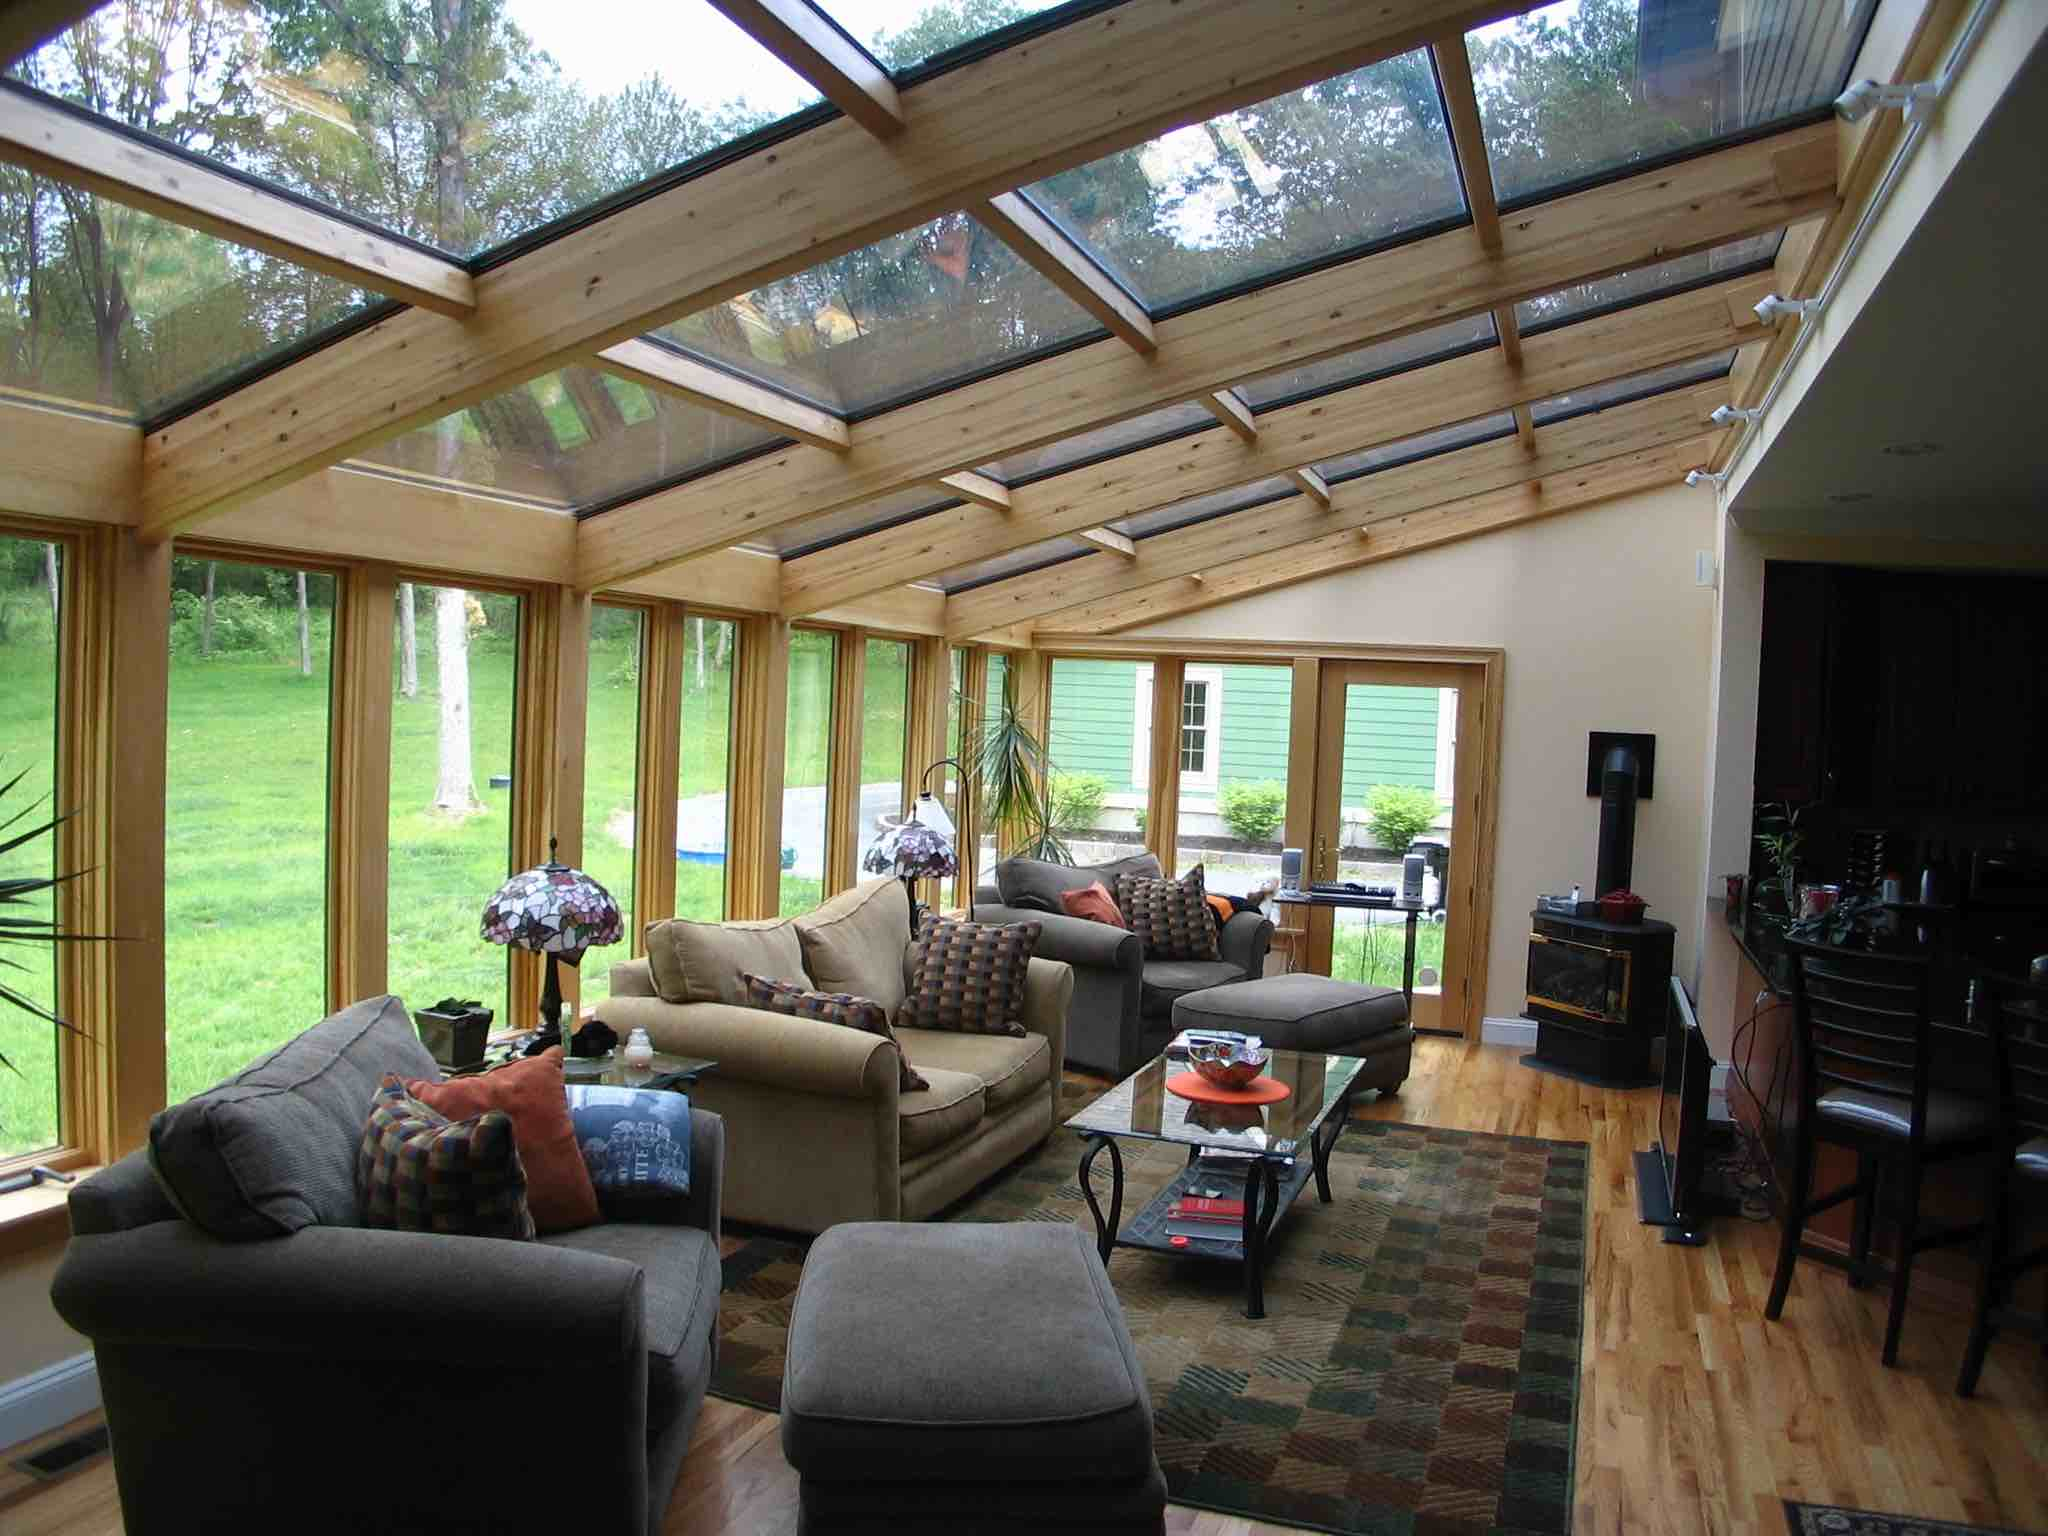 Sunrooms Four Seasons Distributor Budget Glass Nanaimo Bc